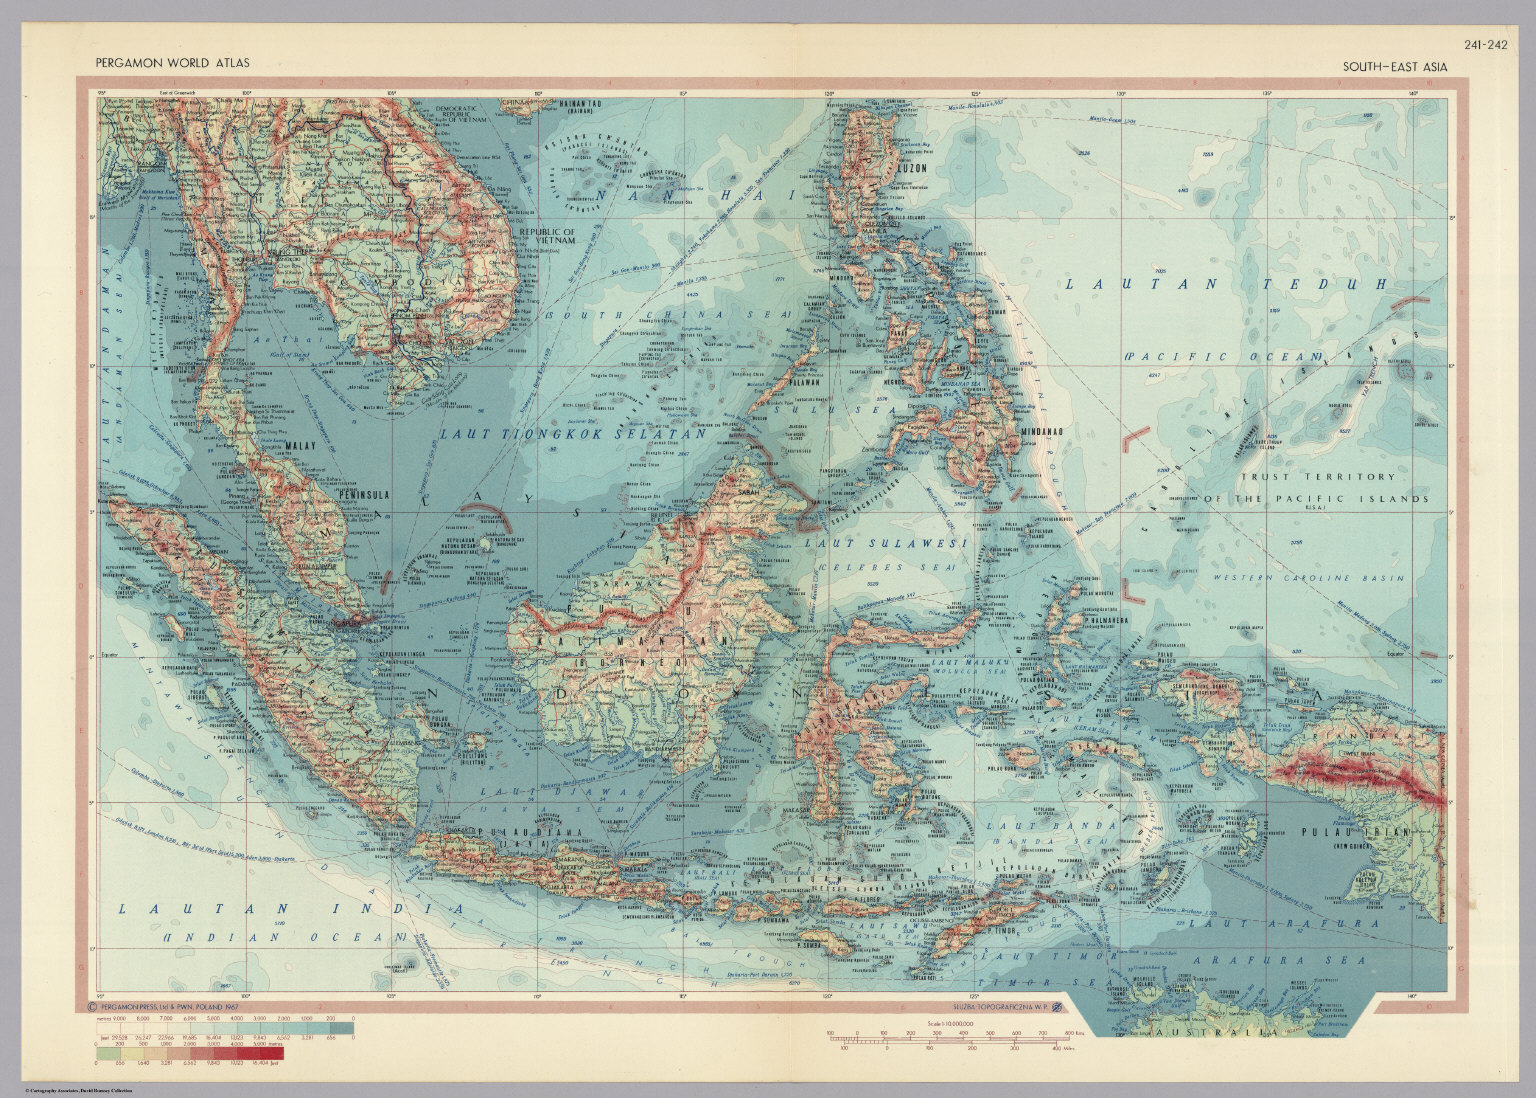 South east asia pergamon world atlas david rumsey historical south east asia pergamon world atlas gumiabroncs Gallery